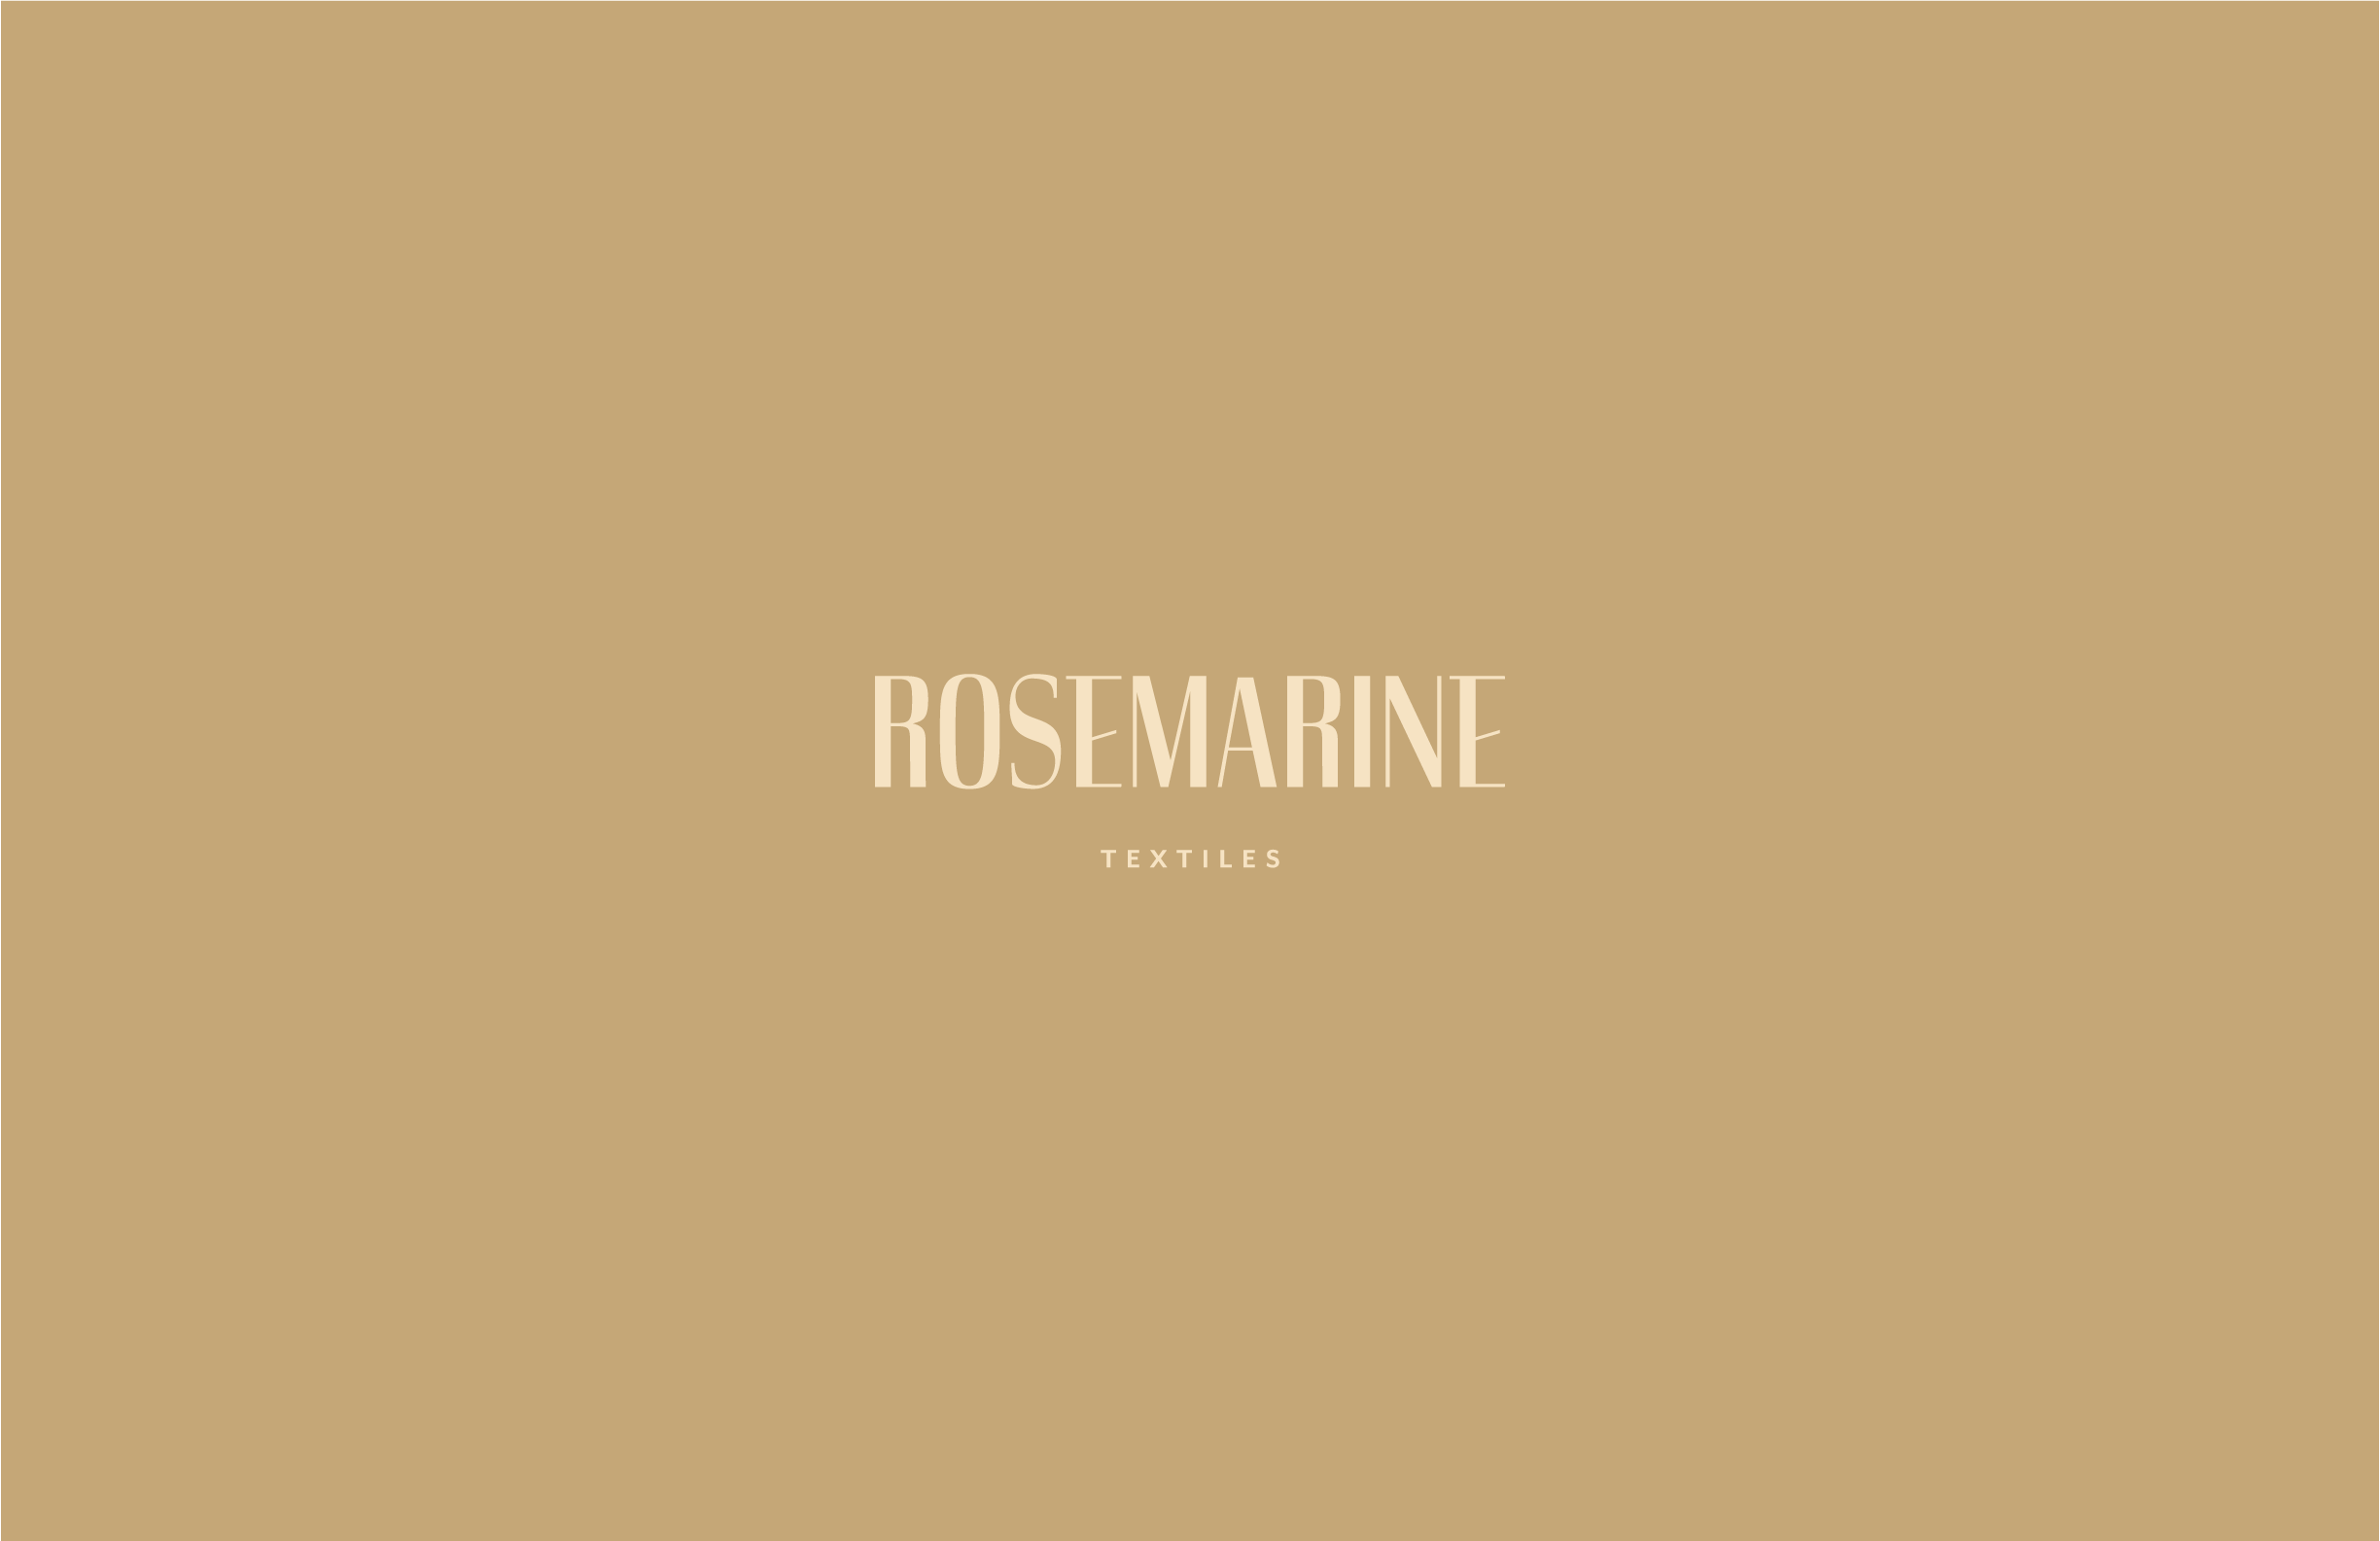 rosemarineTextiles_primary.png